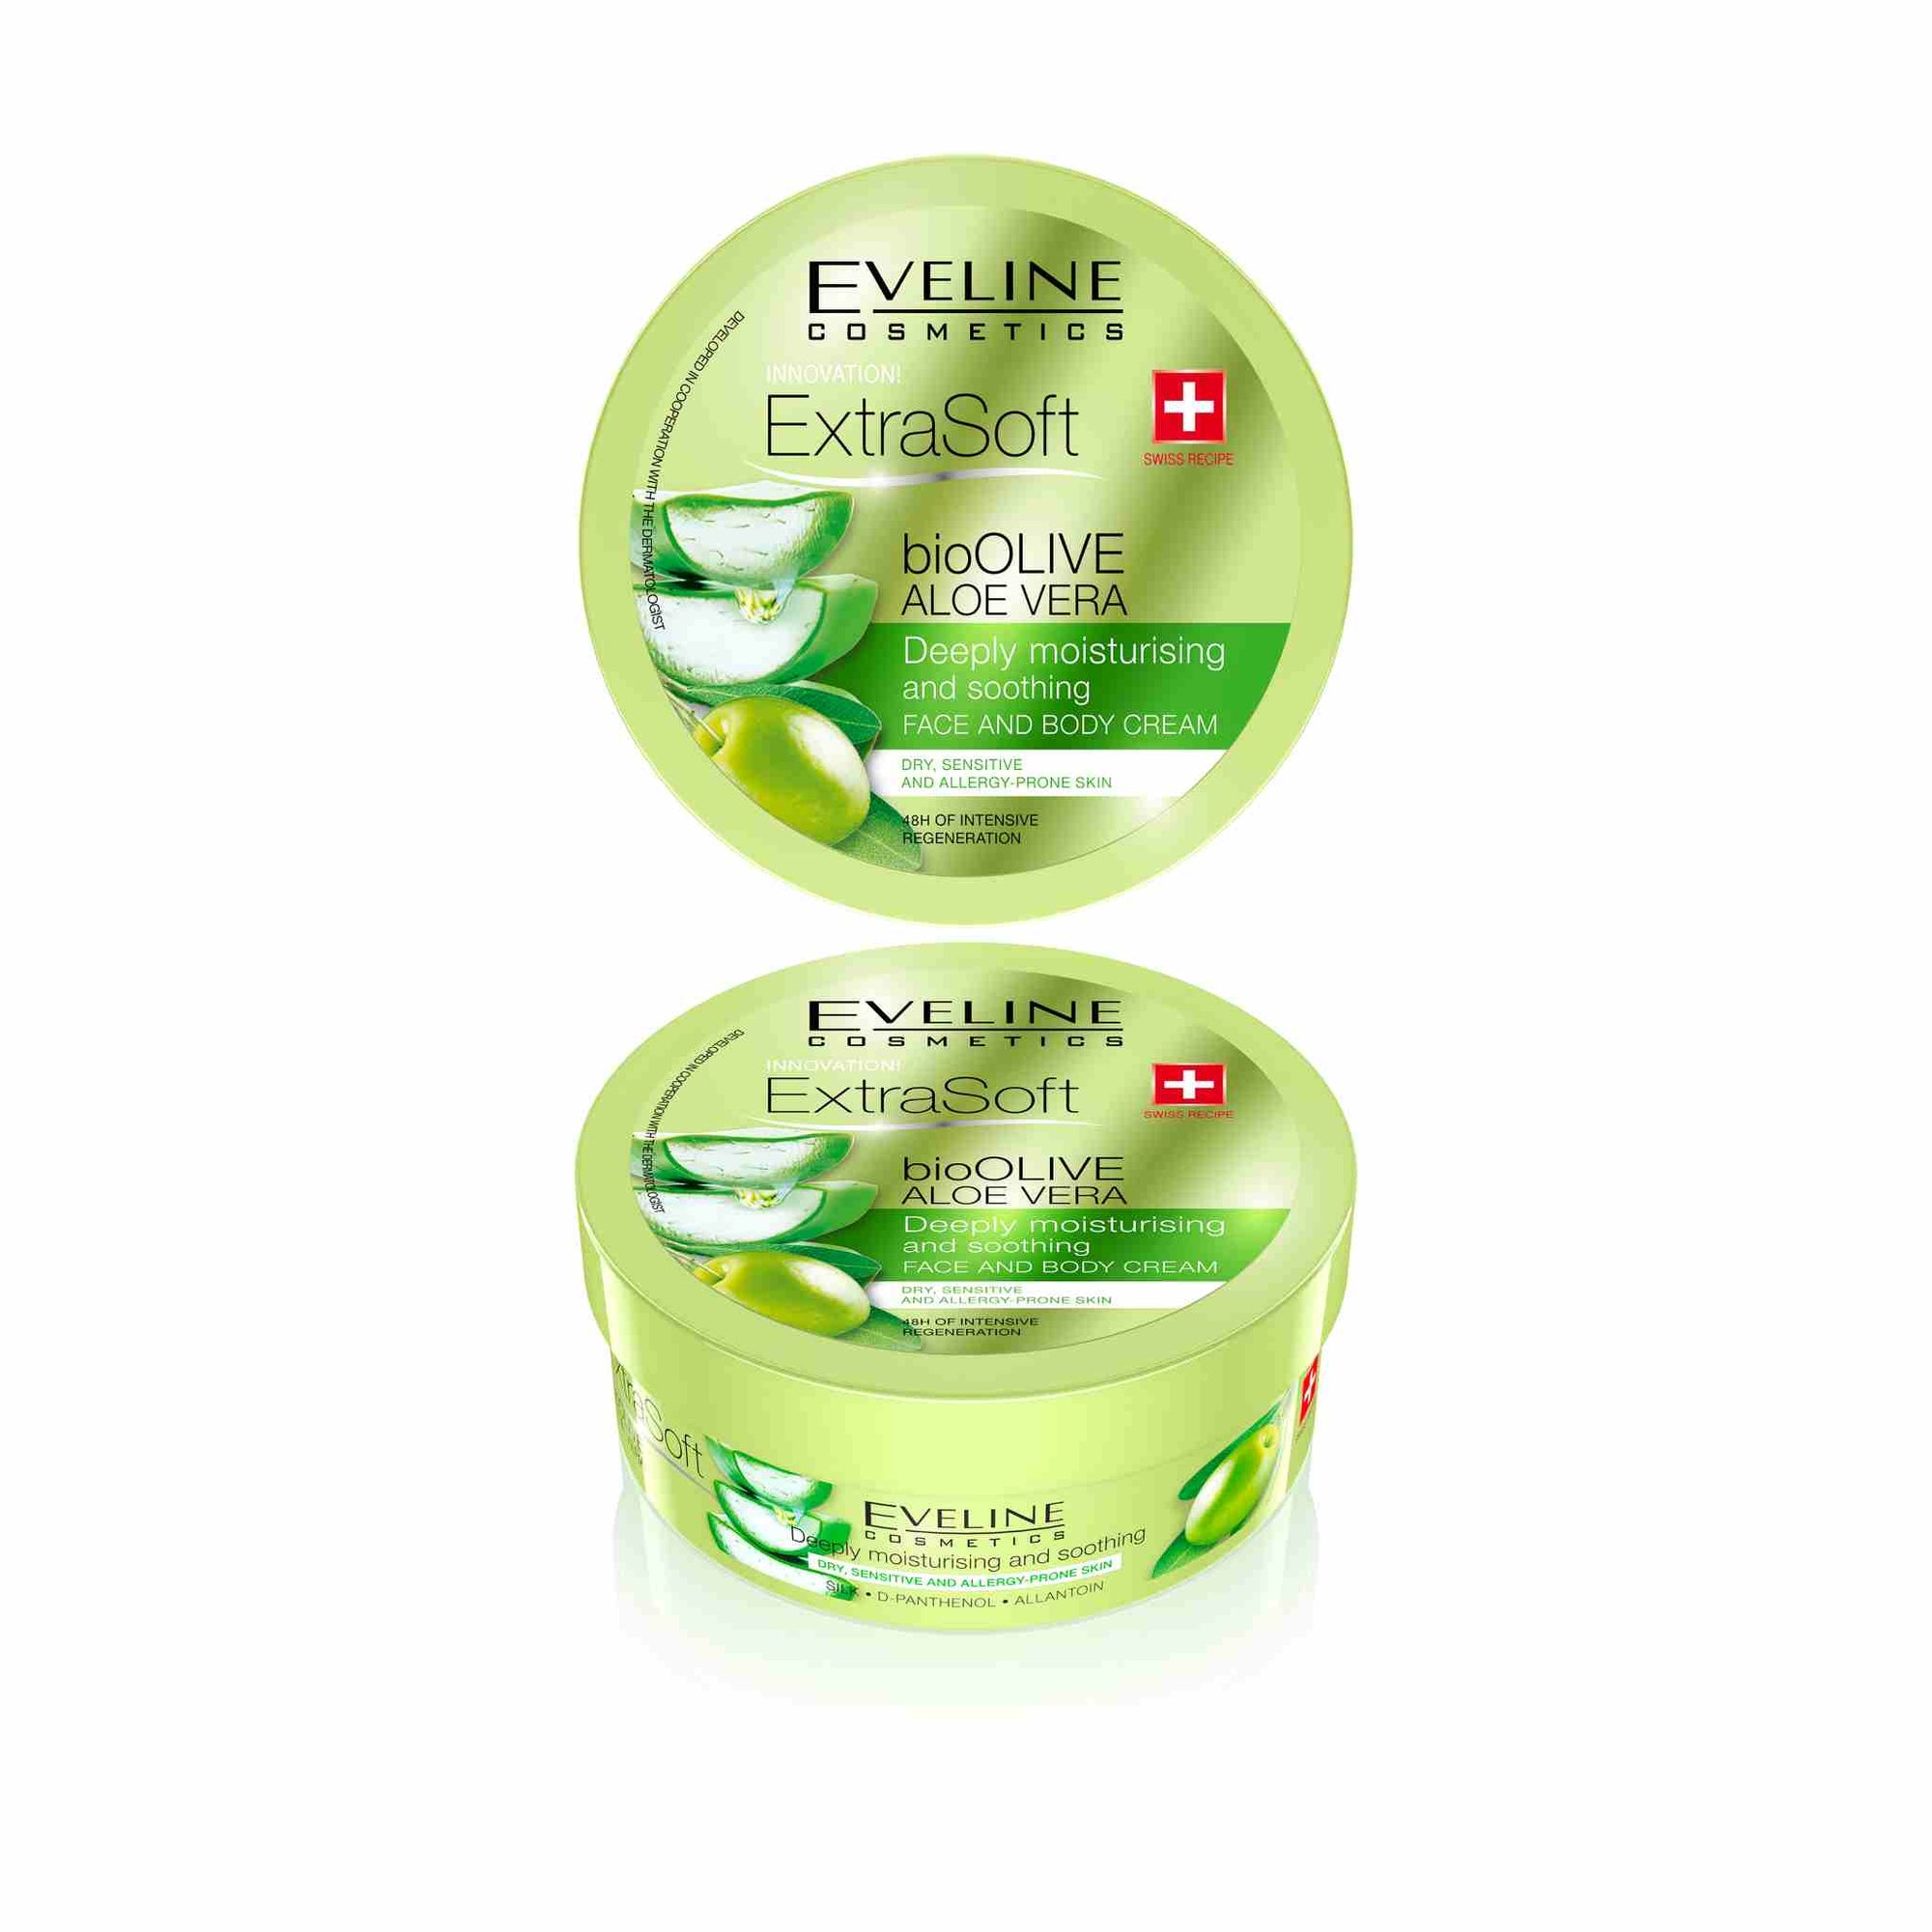 Extra Soft bio Olive Aloe Vera Deeply Moisturizing and Smoothing Face and Body Cream